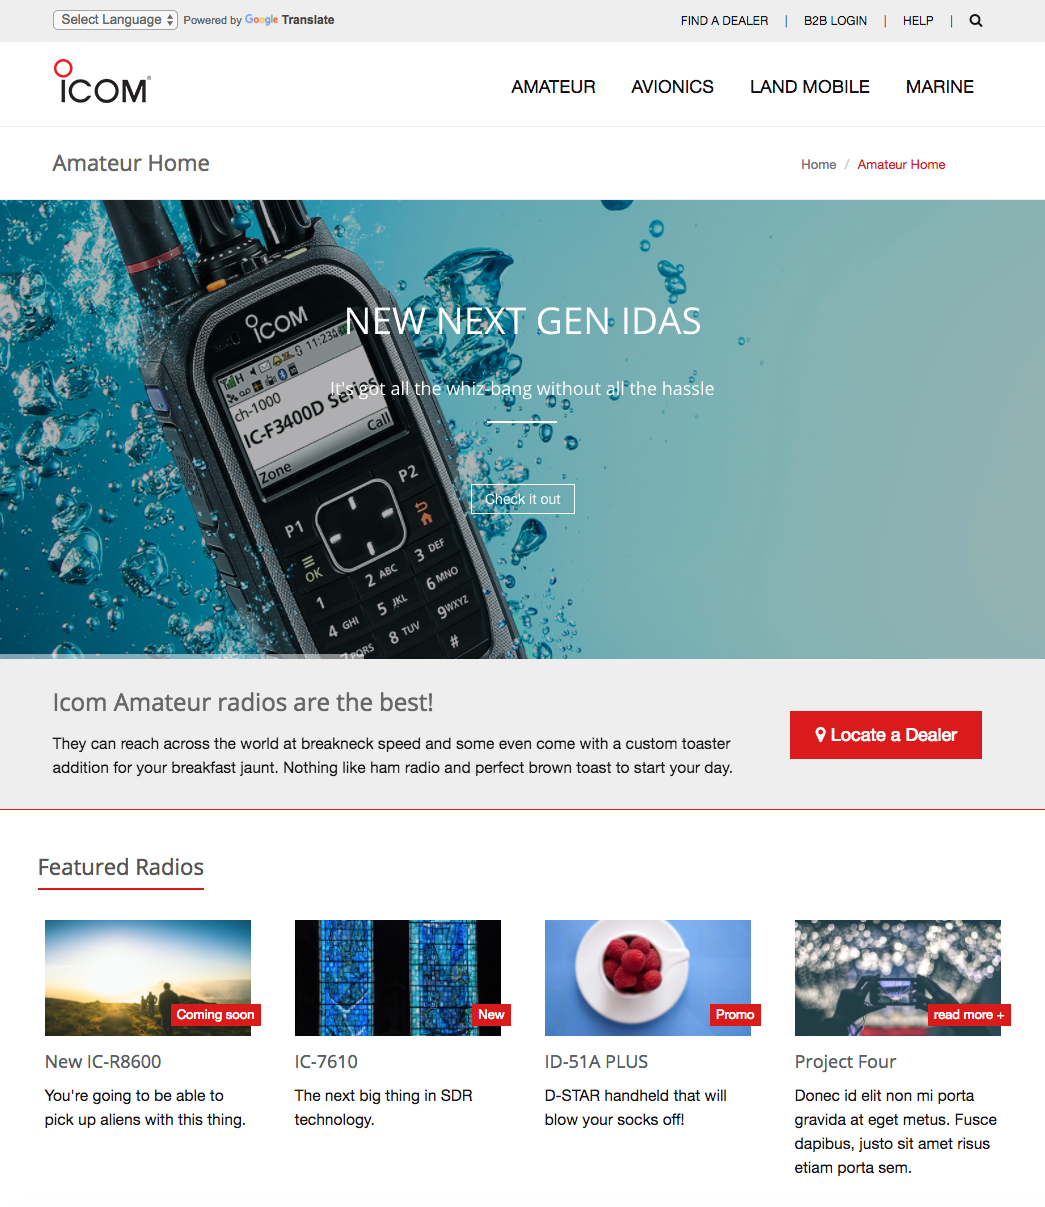 icom proposed division landing page